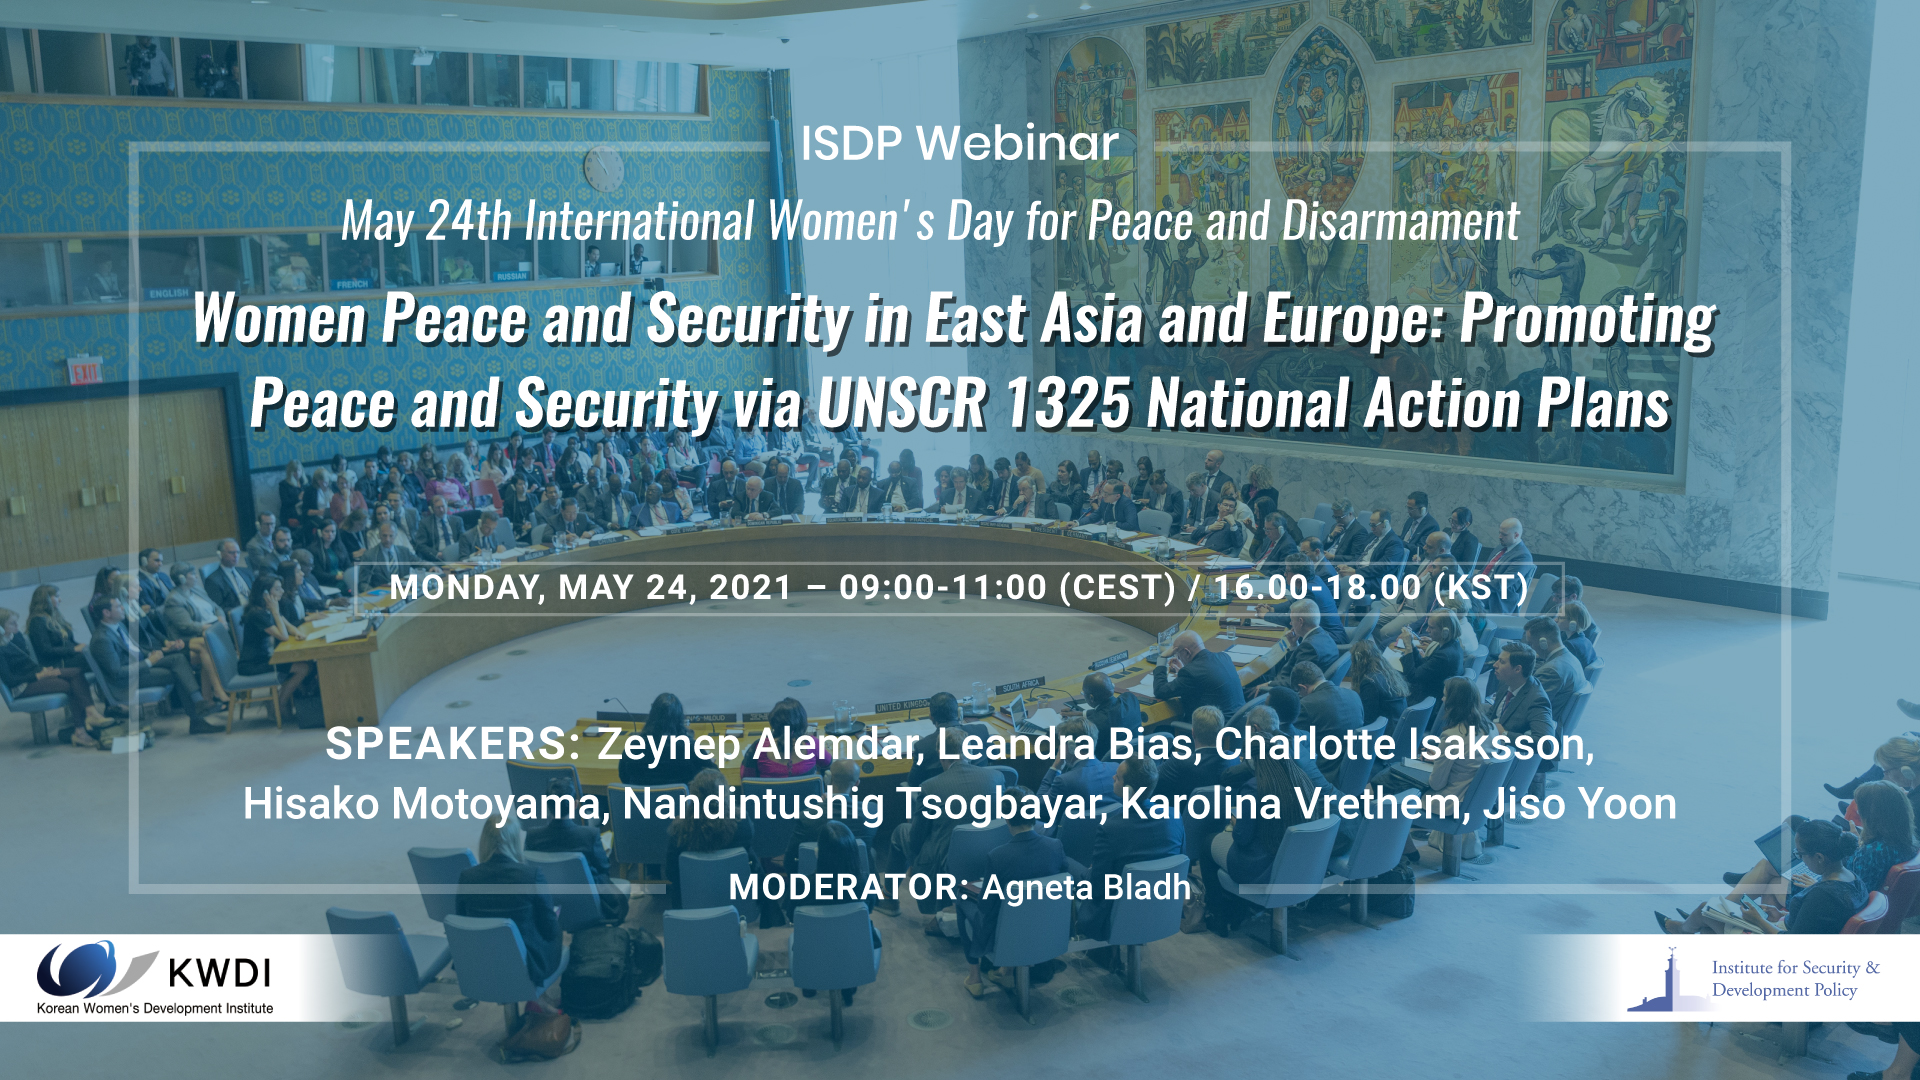 Women Peace and Security in East Asia and Europe: Promoting Peace and Security via UNSCR 1325 National Action Plans